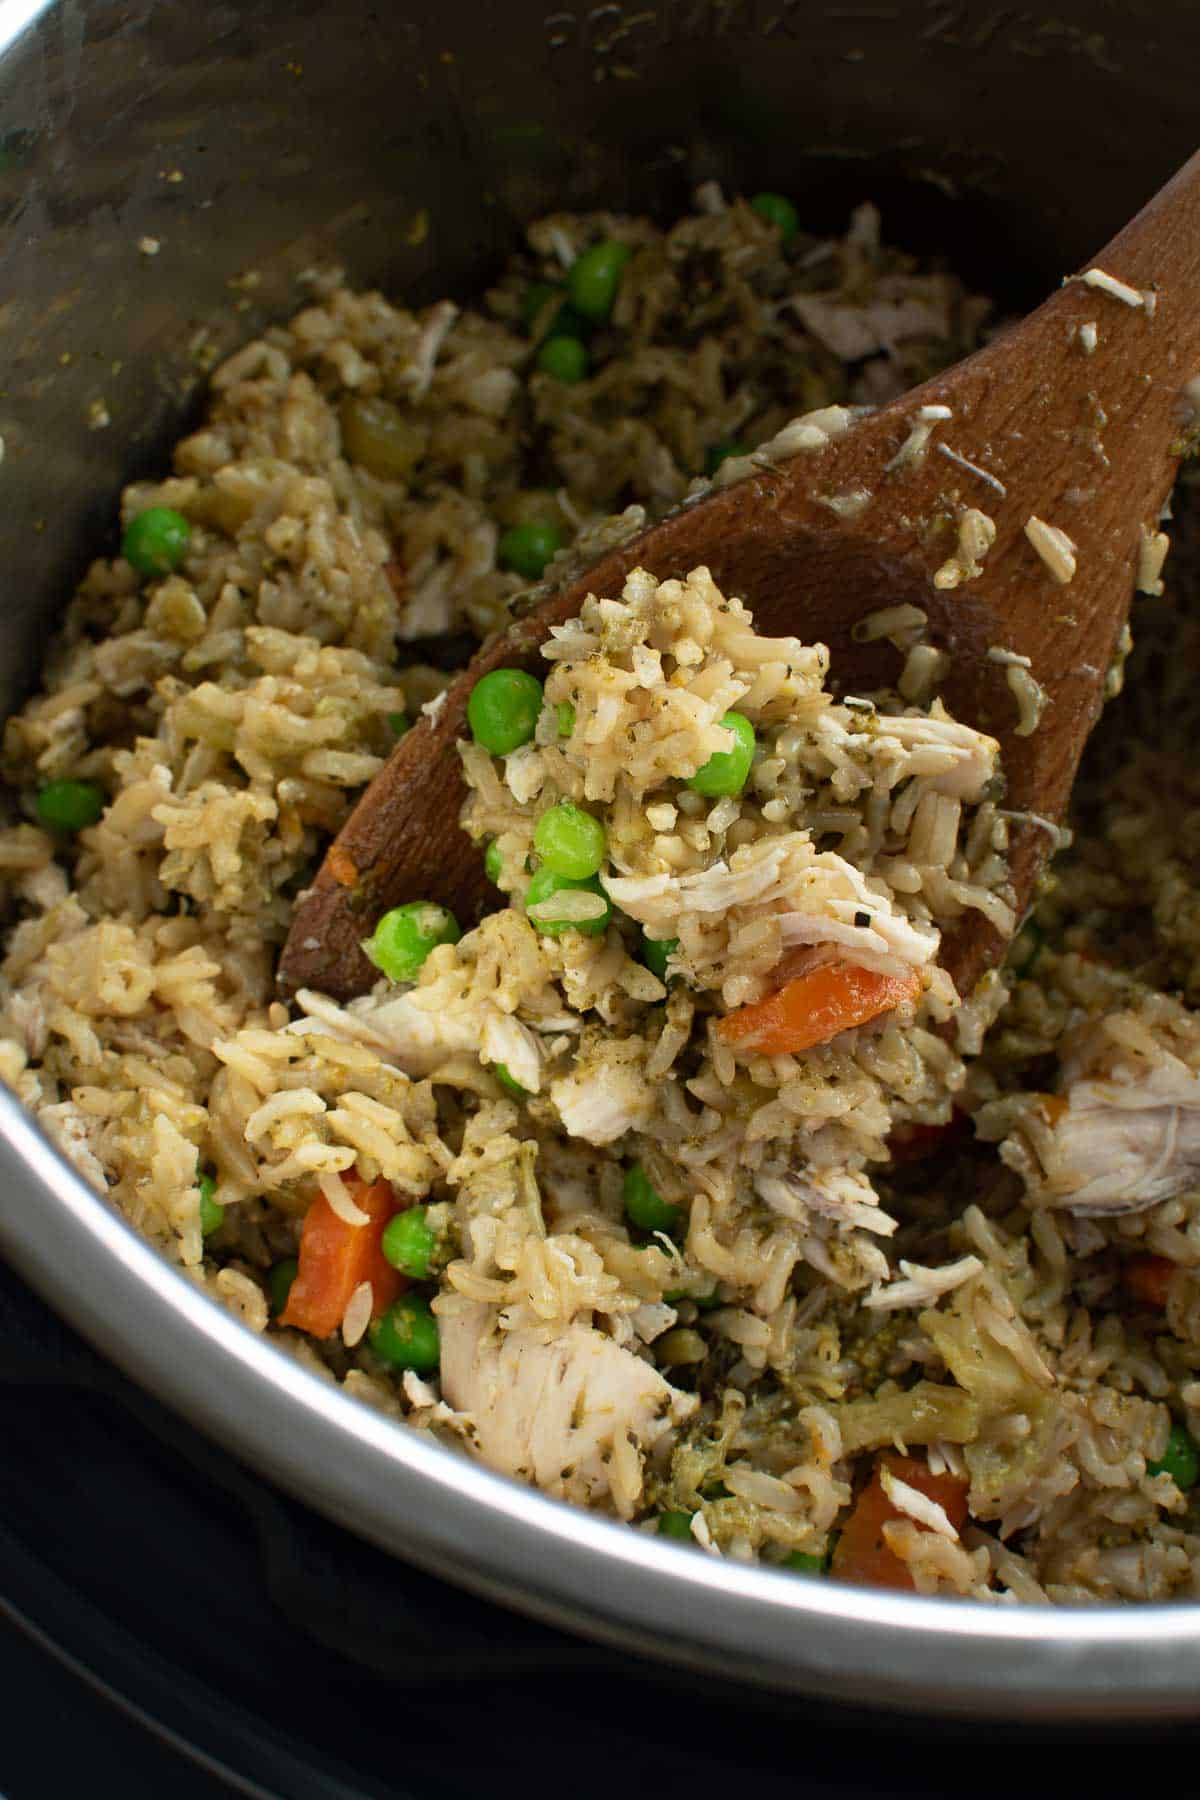 Chicken and rice in instant pot, with a spoon lifting up a serving.